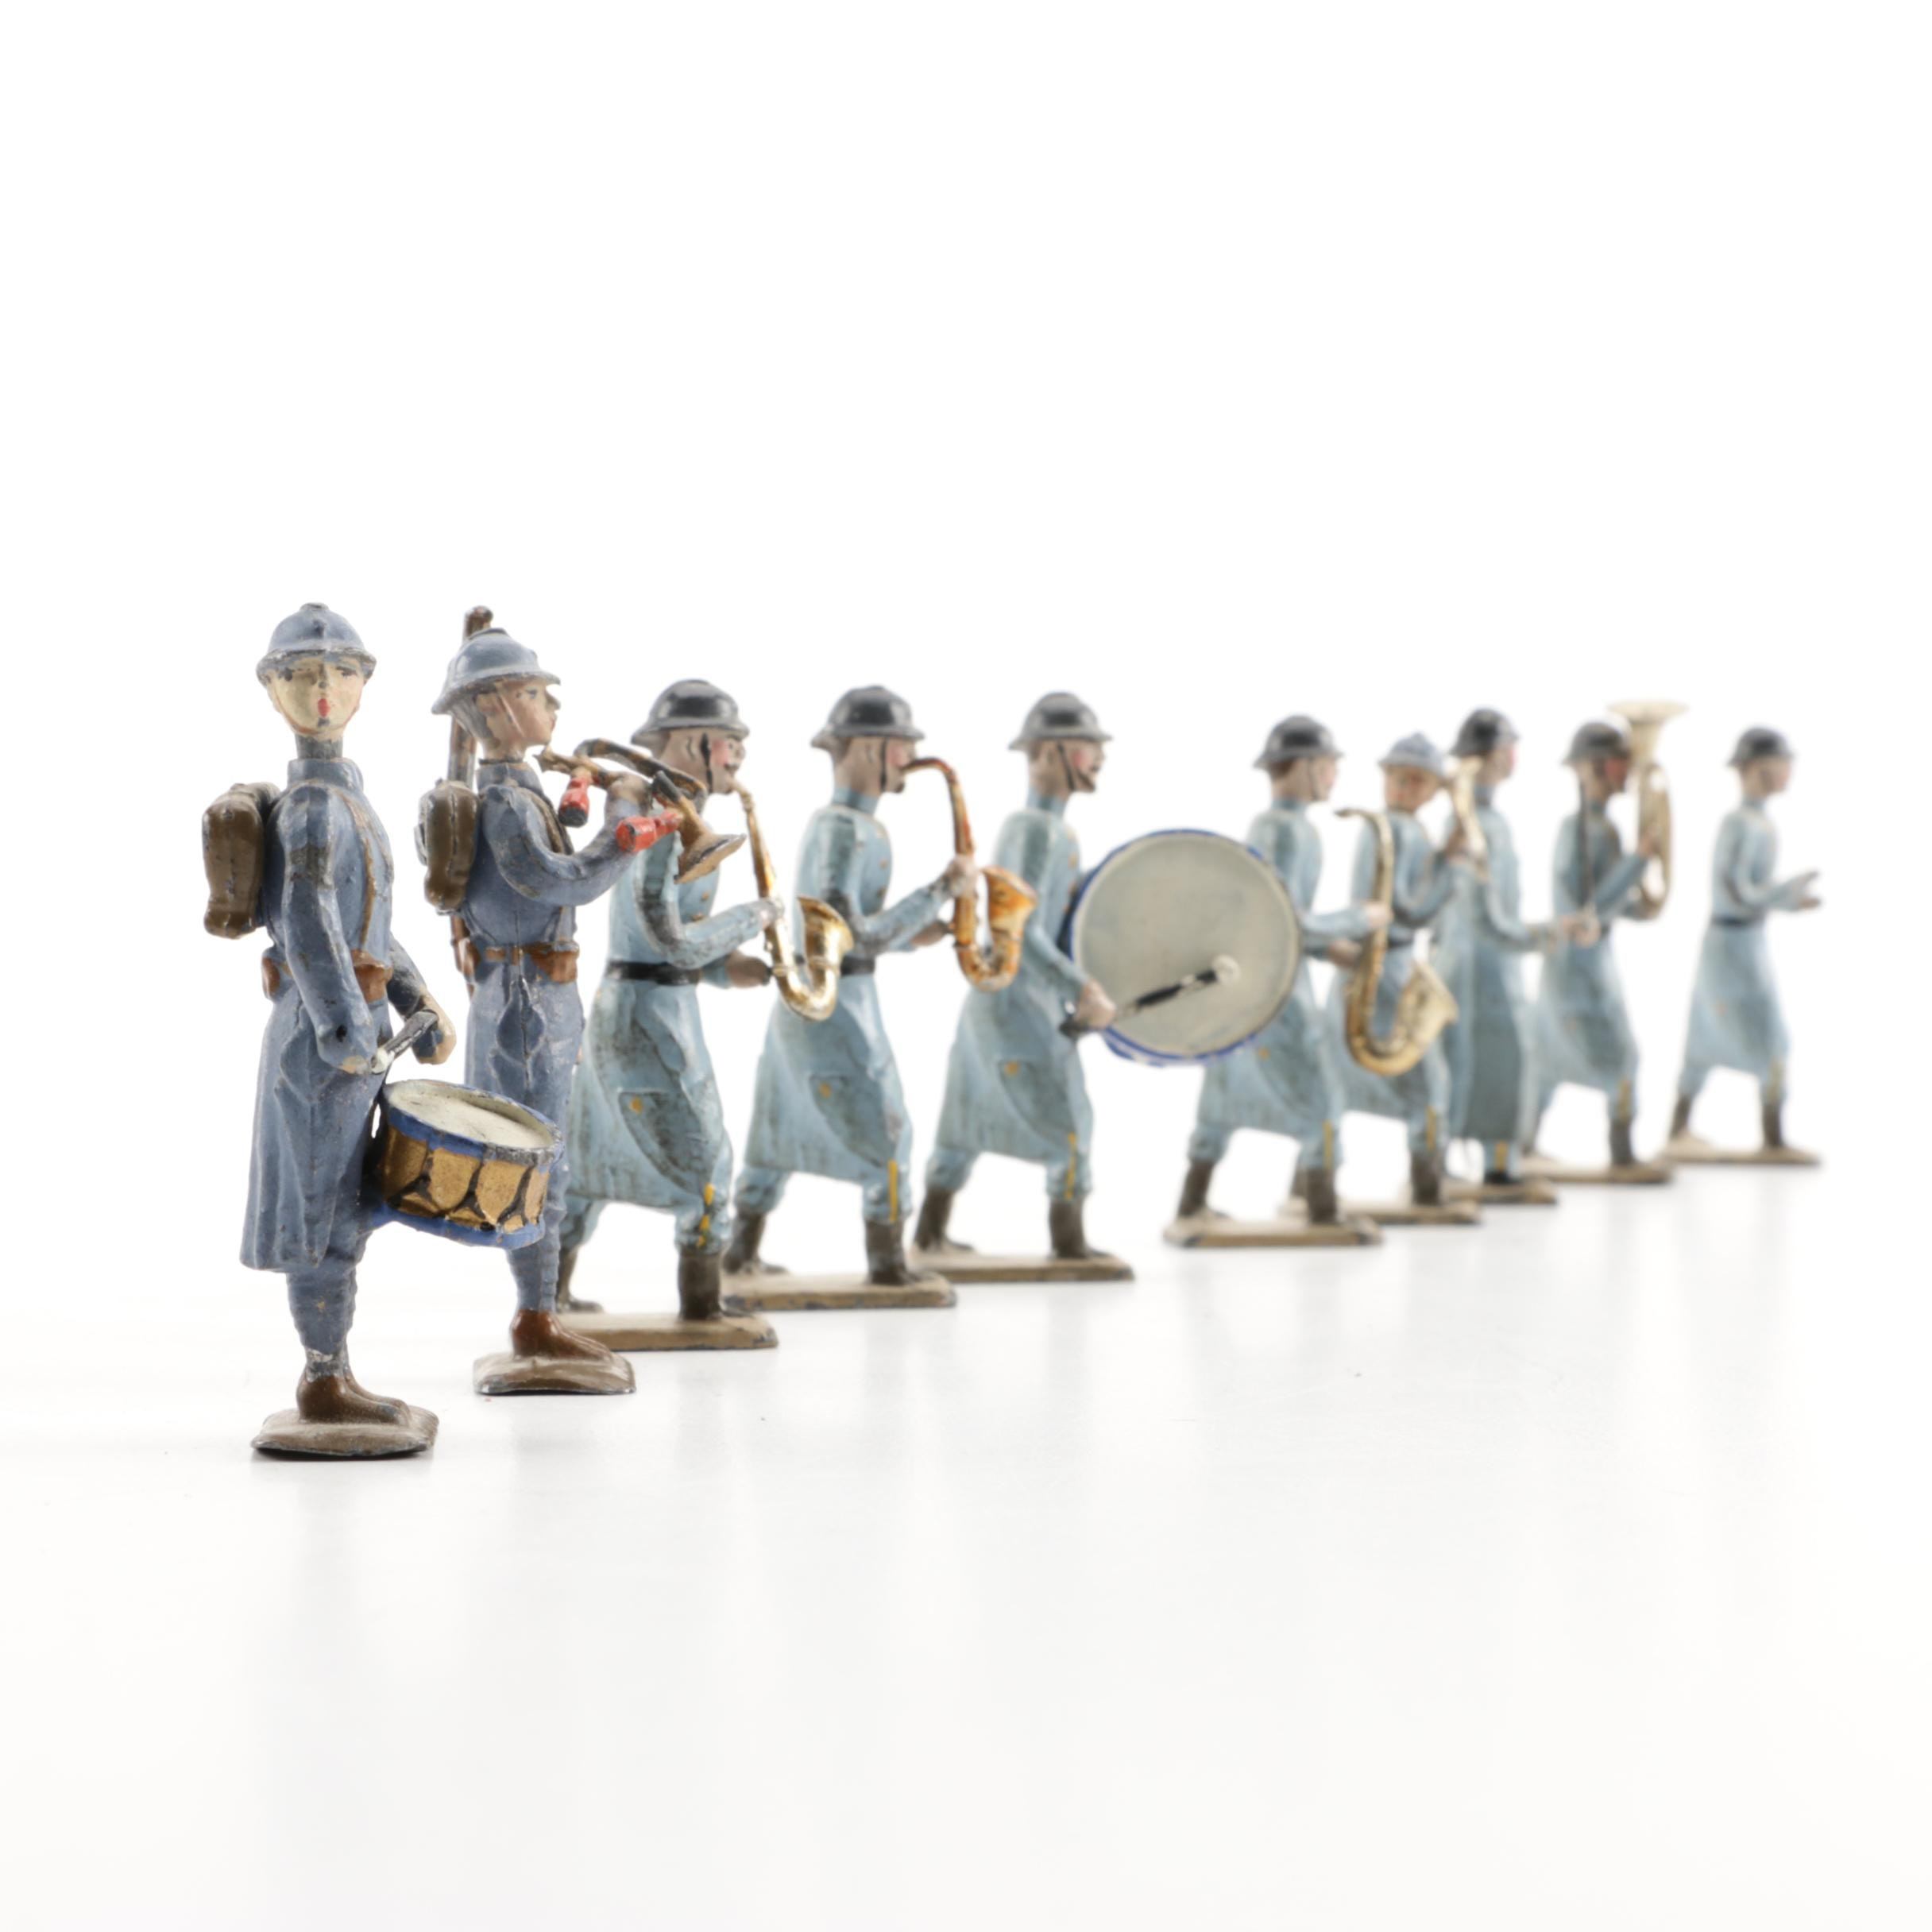 Metal Figurines of Military Musicians